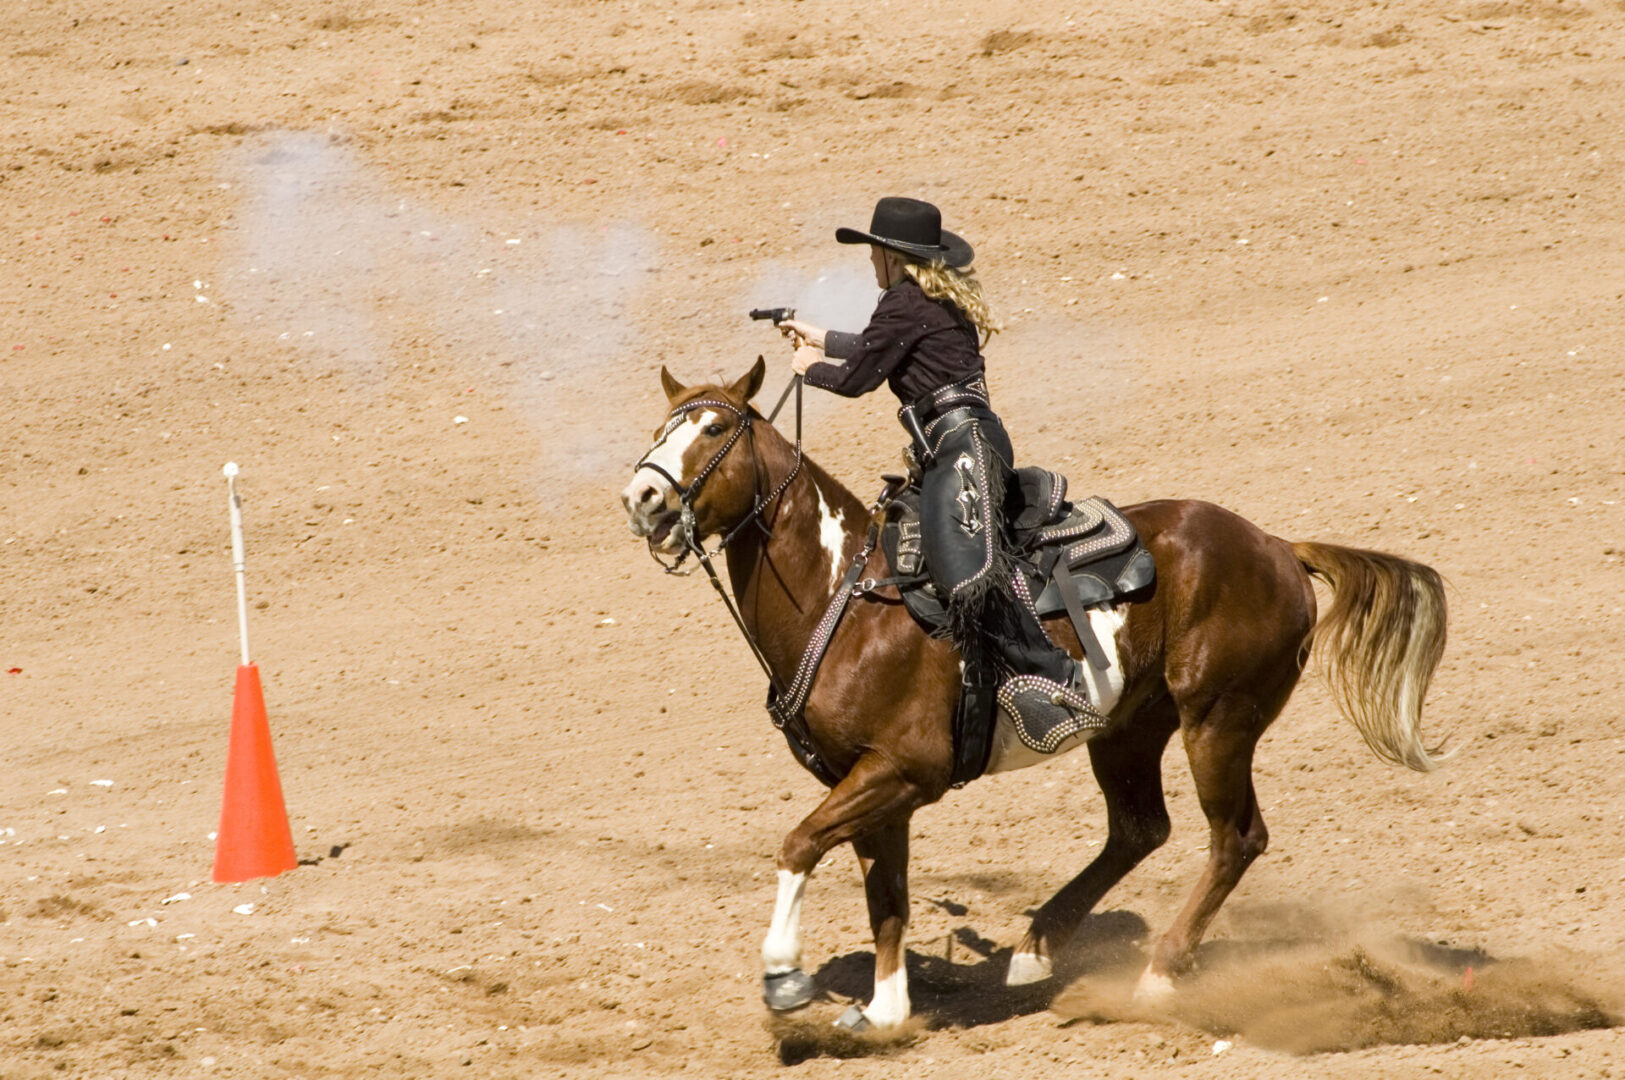 mounted shooting action at the Arizona Cowboy Mounted Shooting Association 2007 southwest regional championship in Phoenix.